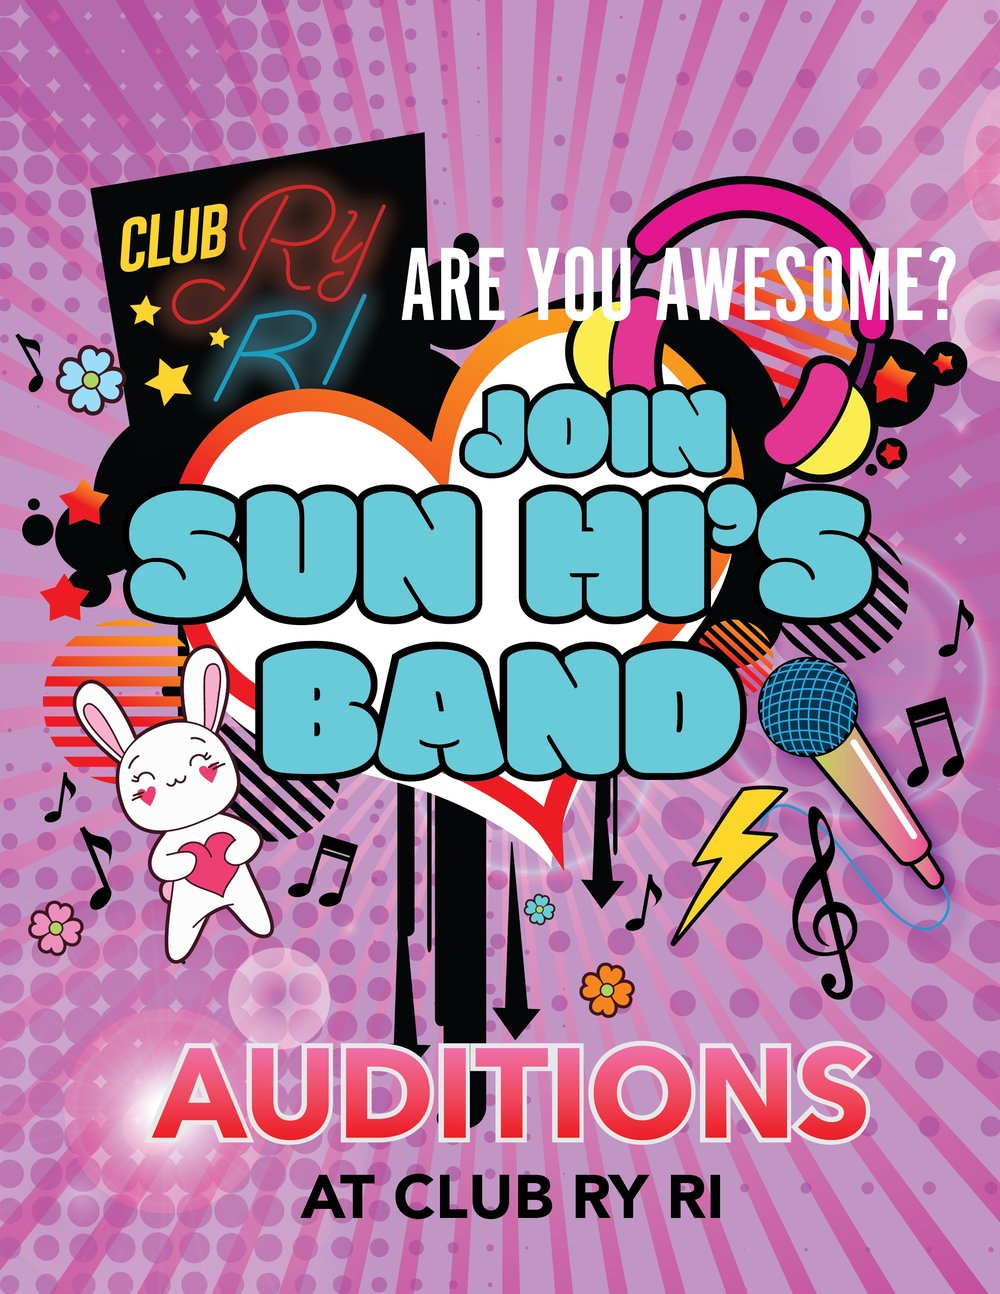 MIP2_201_14_SUN HI AUDITION POSTER.jpg